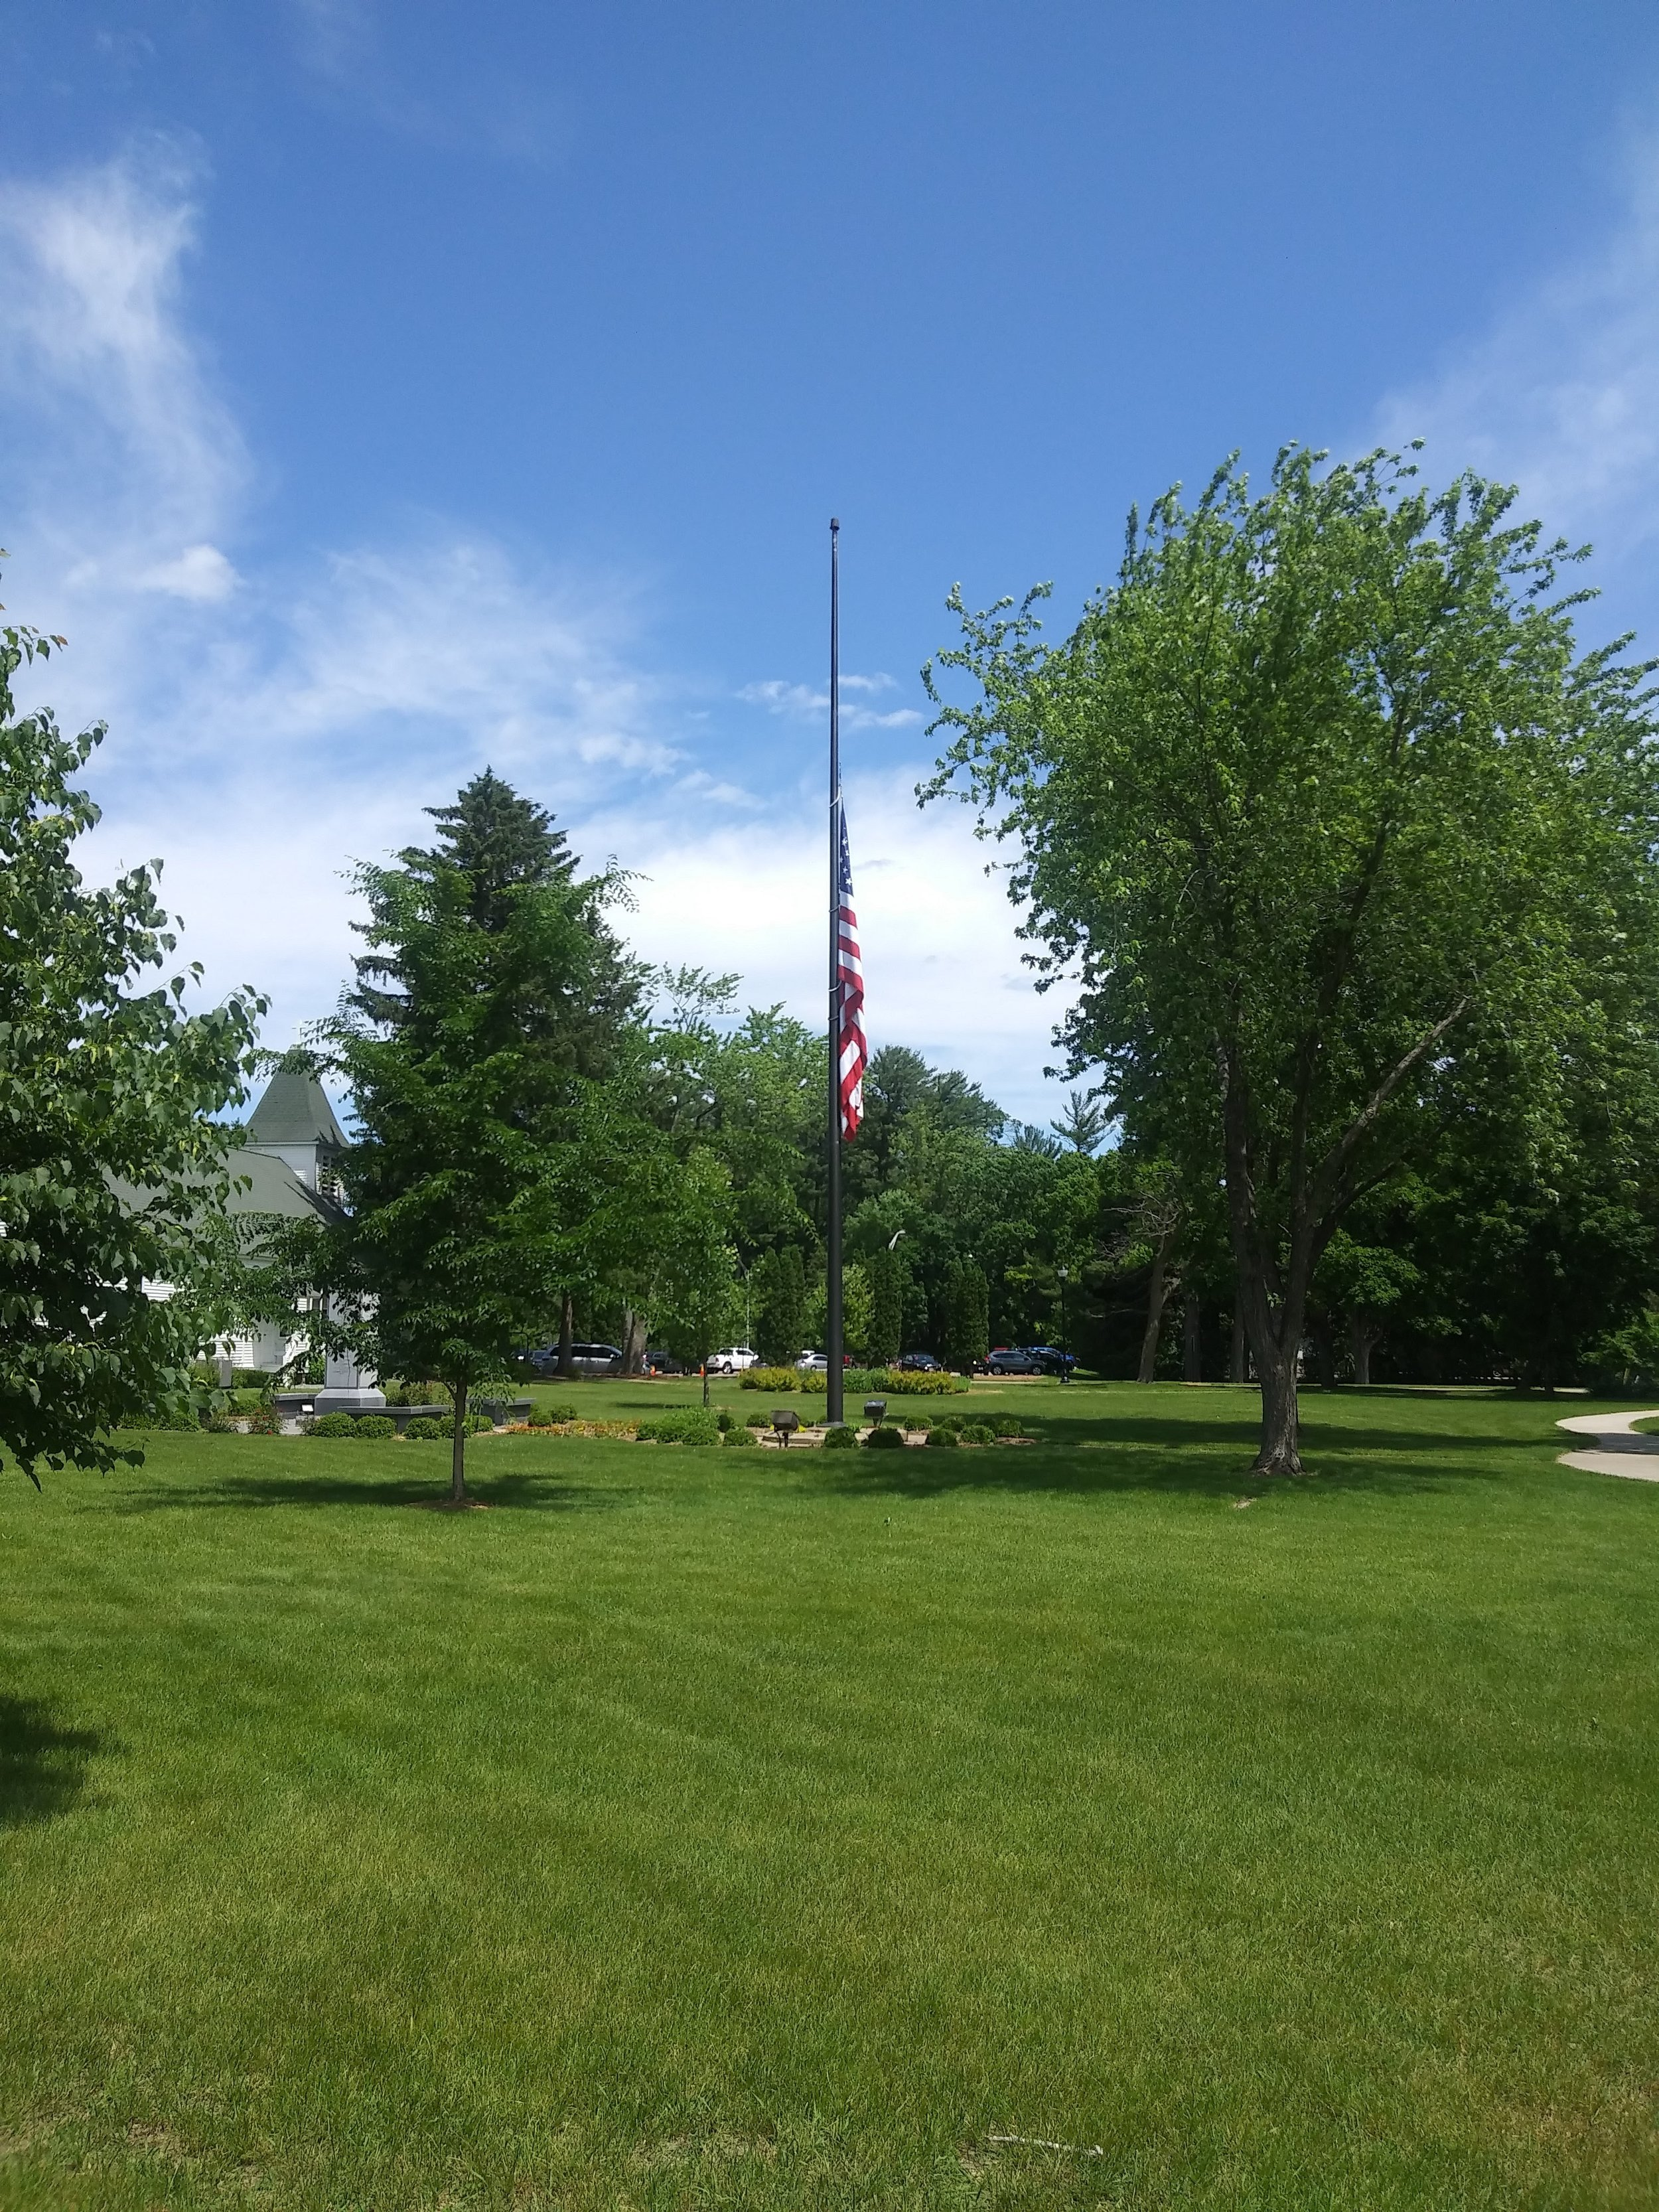 Old Glory has good reason to be at half-mast at the Wisconsin Veterans Home. The oldest veterans housing and recovery program in the country is being closed down.